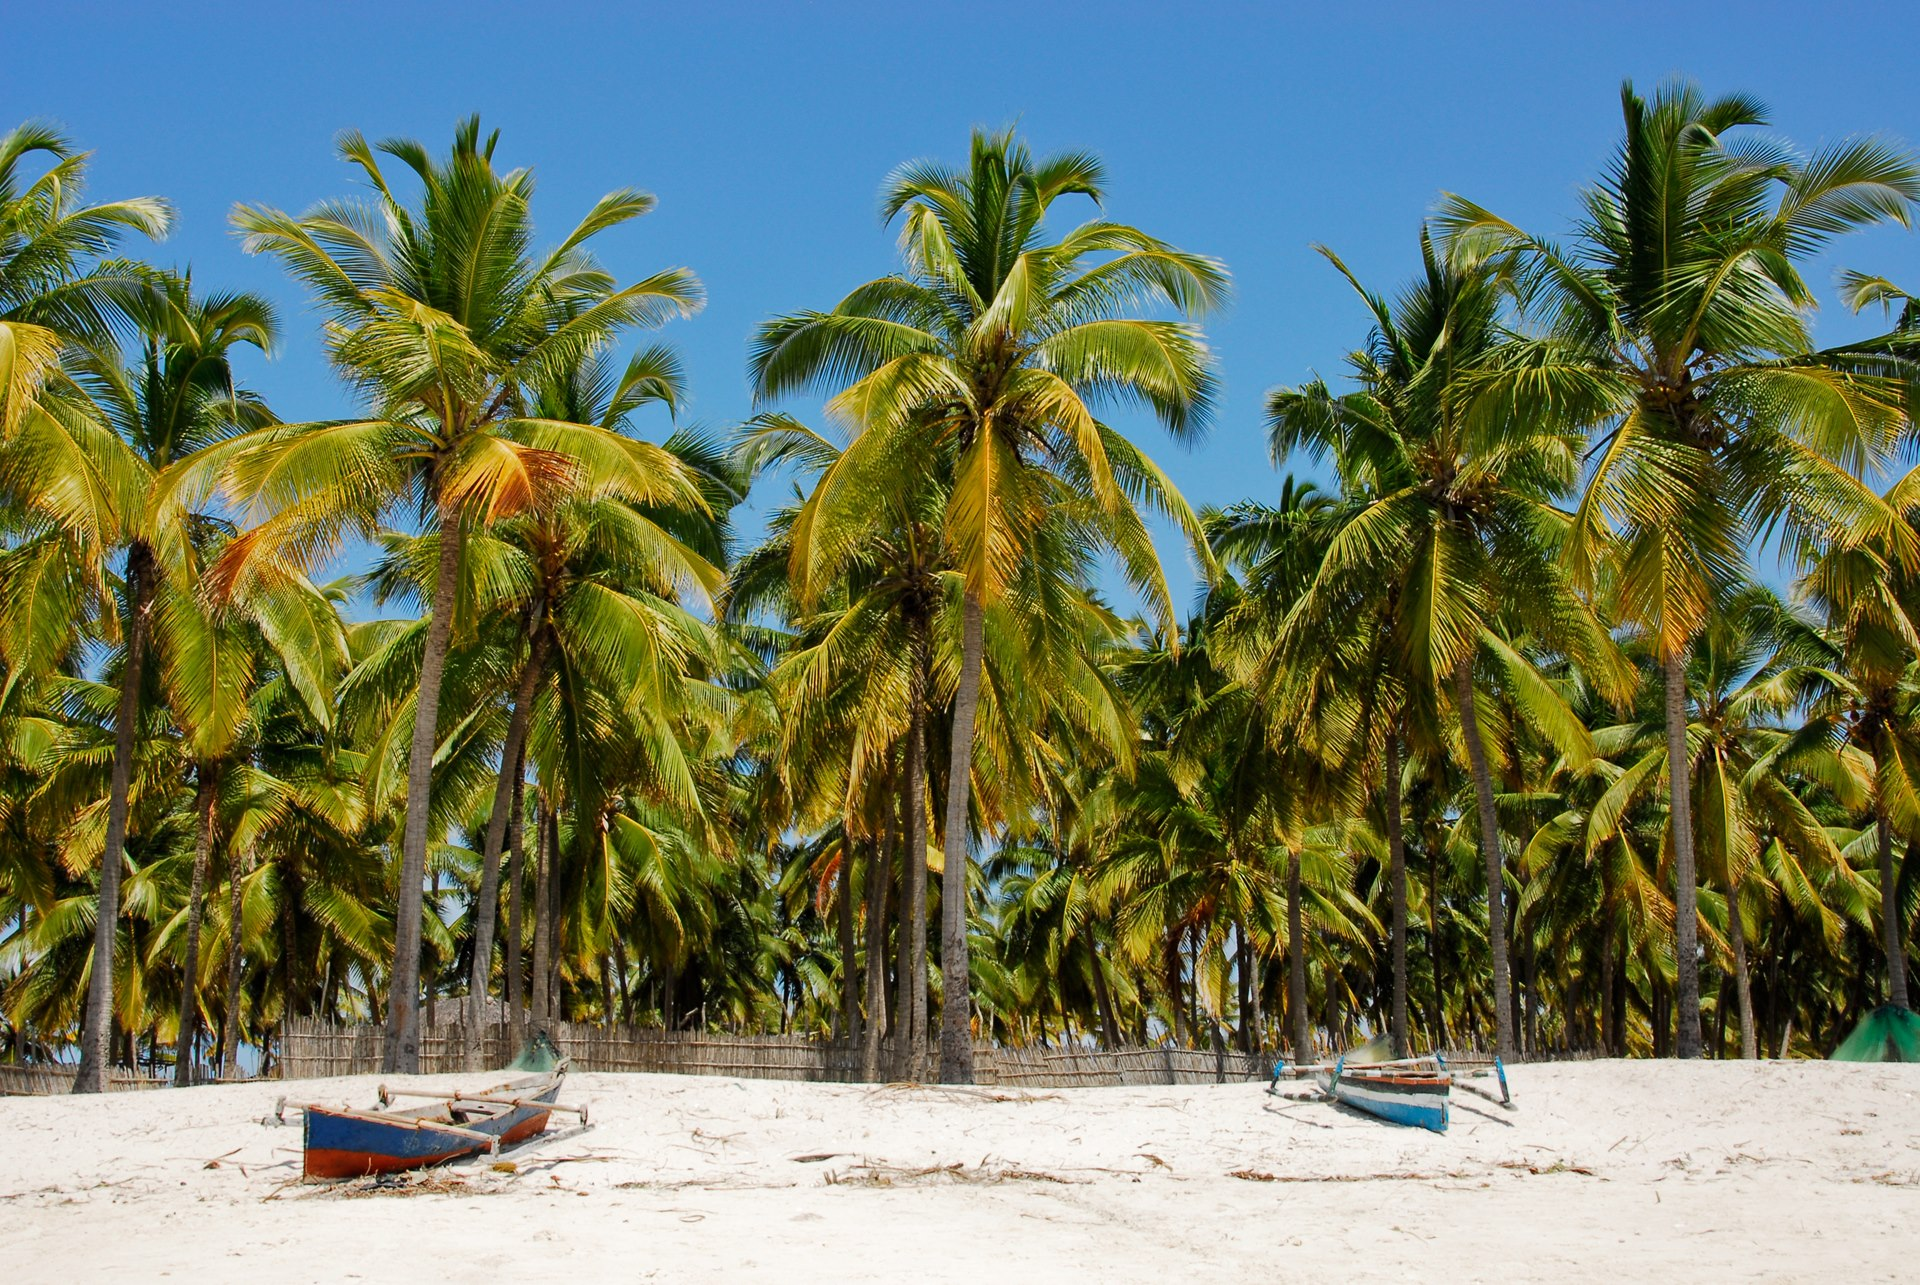 Reasons to visit in Momzambique